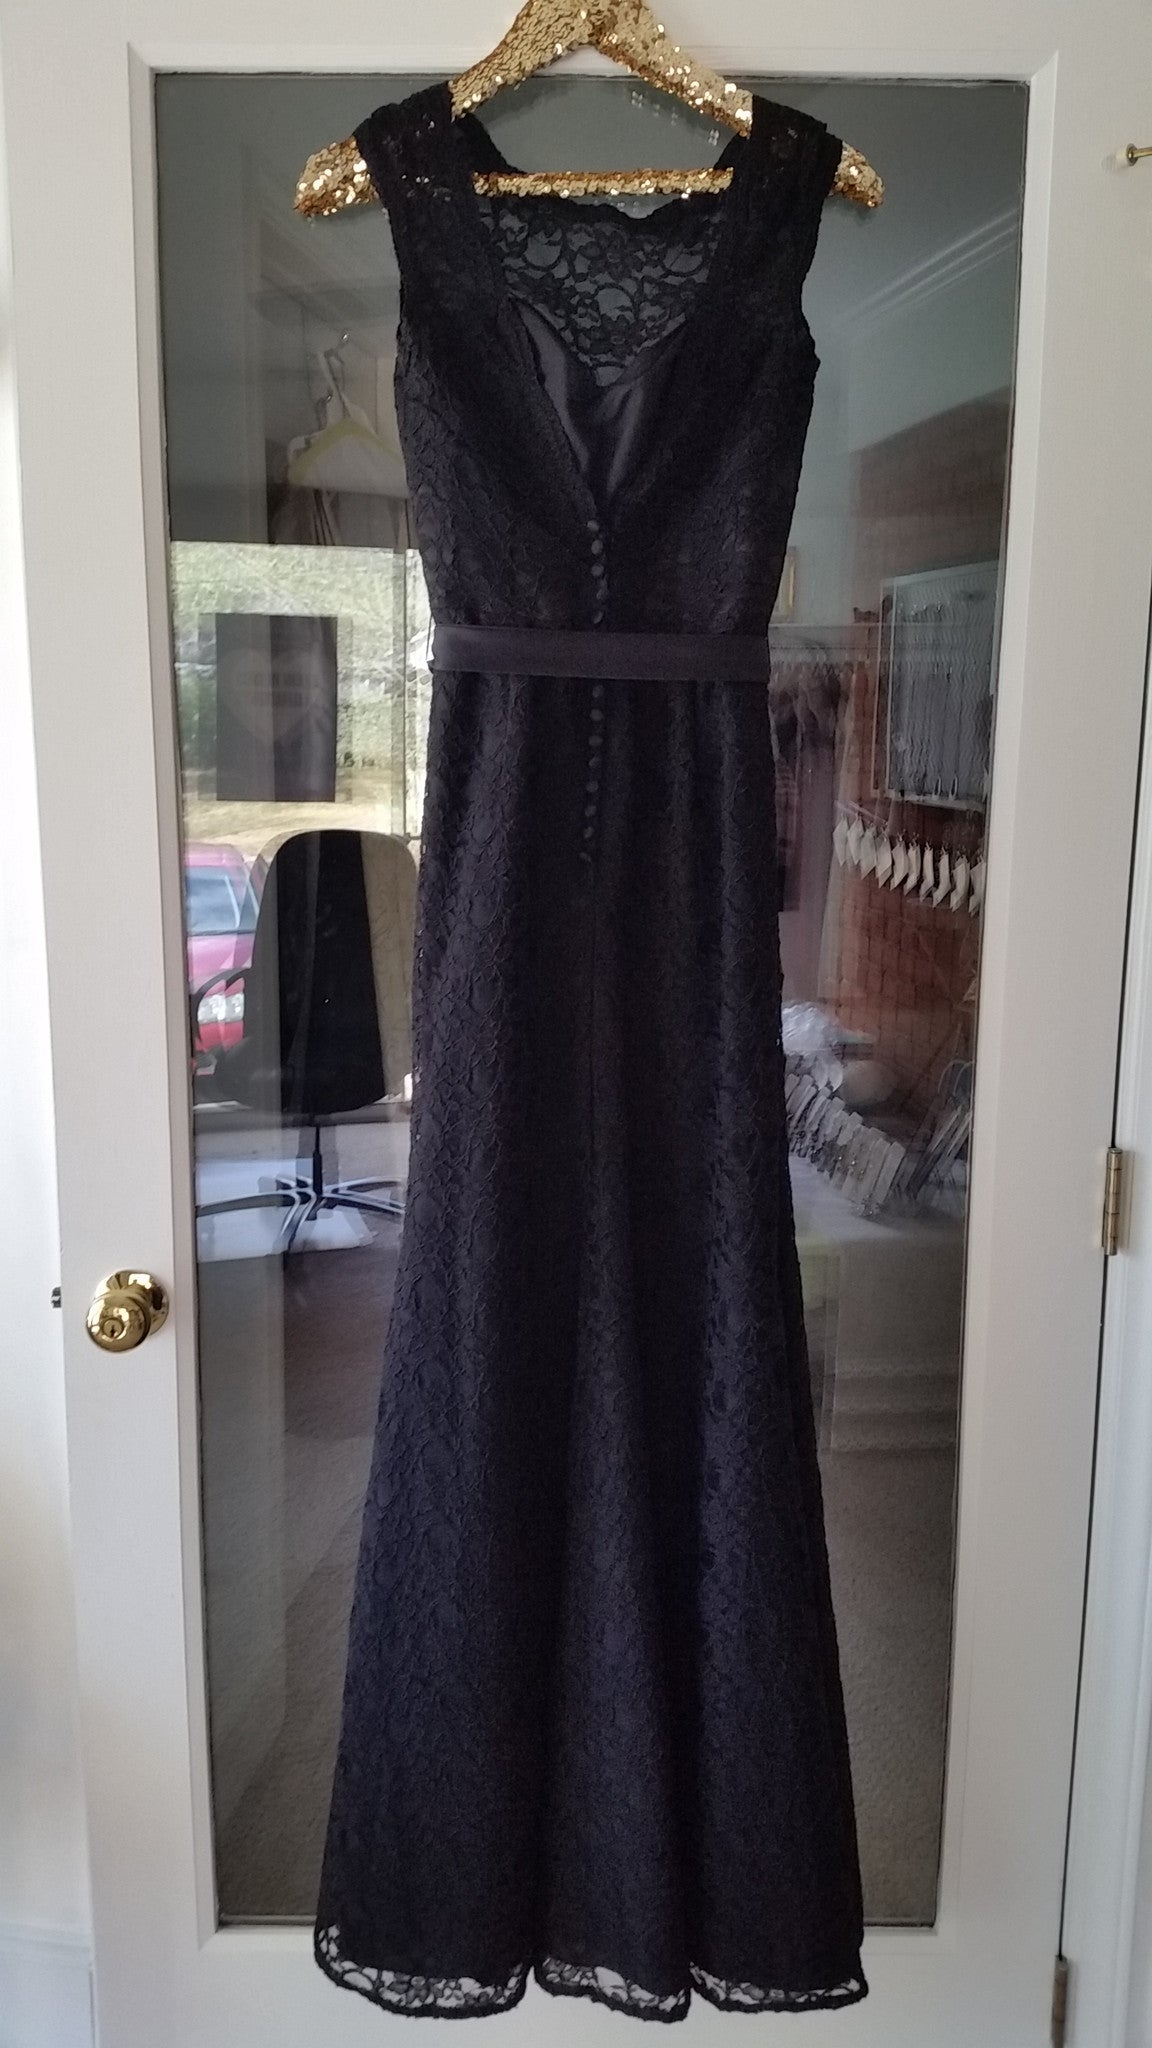 Black Maxi Sleeveless Jewel Dress by Mori Lee, Size 8